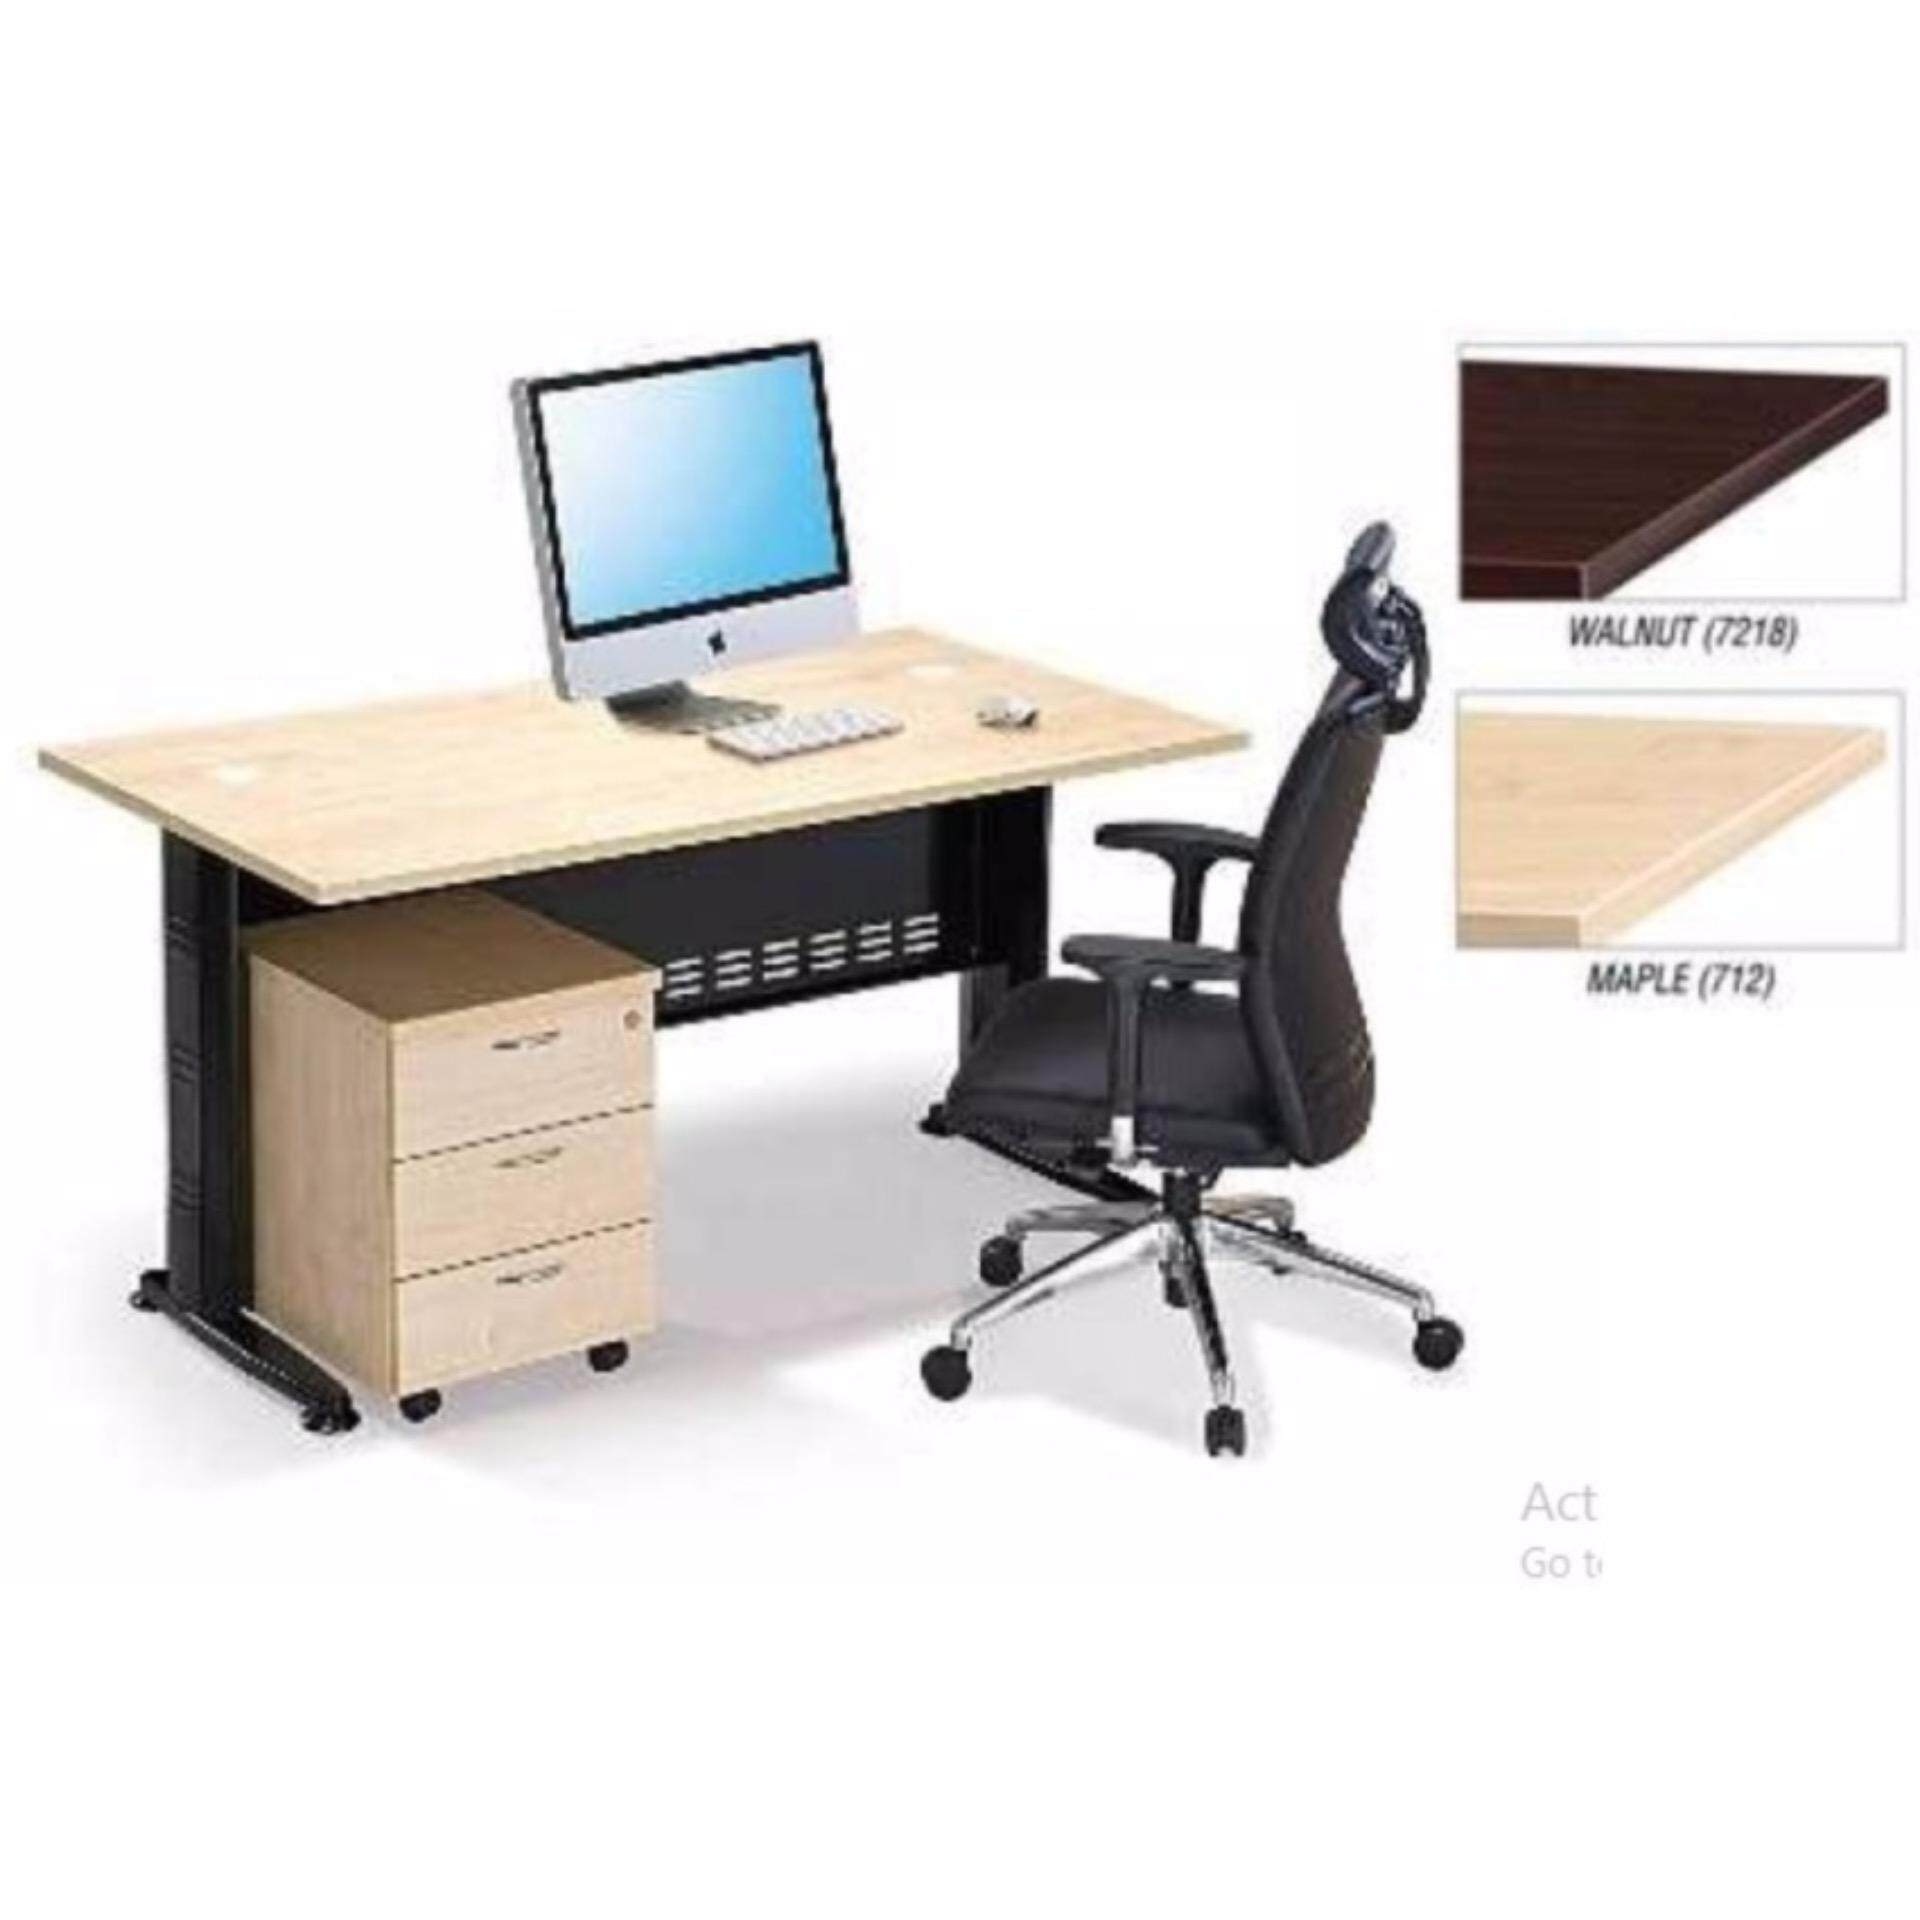 DECO OFFICE TABLE WITH MOBILE DRAWERS OFFICE DESK OFFICE MEETING TABLE DISCUSSION TABLE WRITING TABLE STUDY TABLE DIRECTOR TABLE BOSS TABLE CLERK TABLE STAFF TABLE MAPLE COLOR QT158